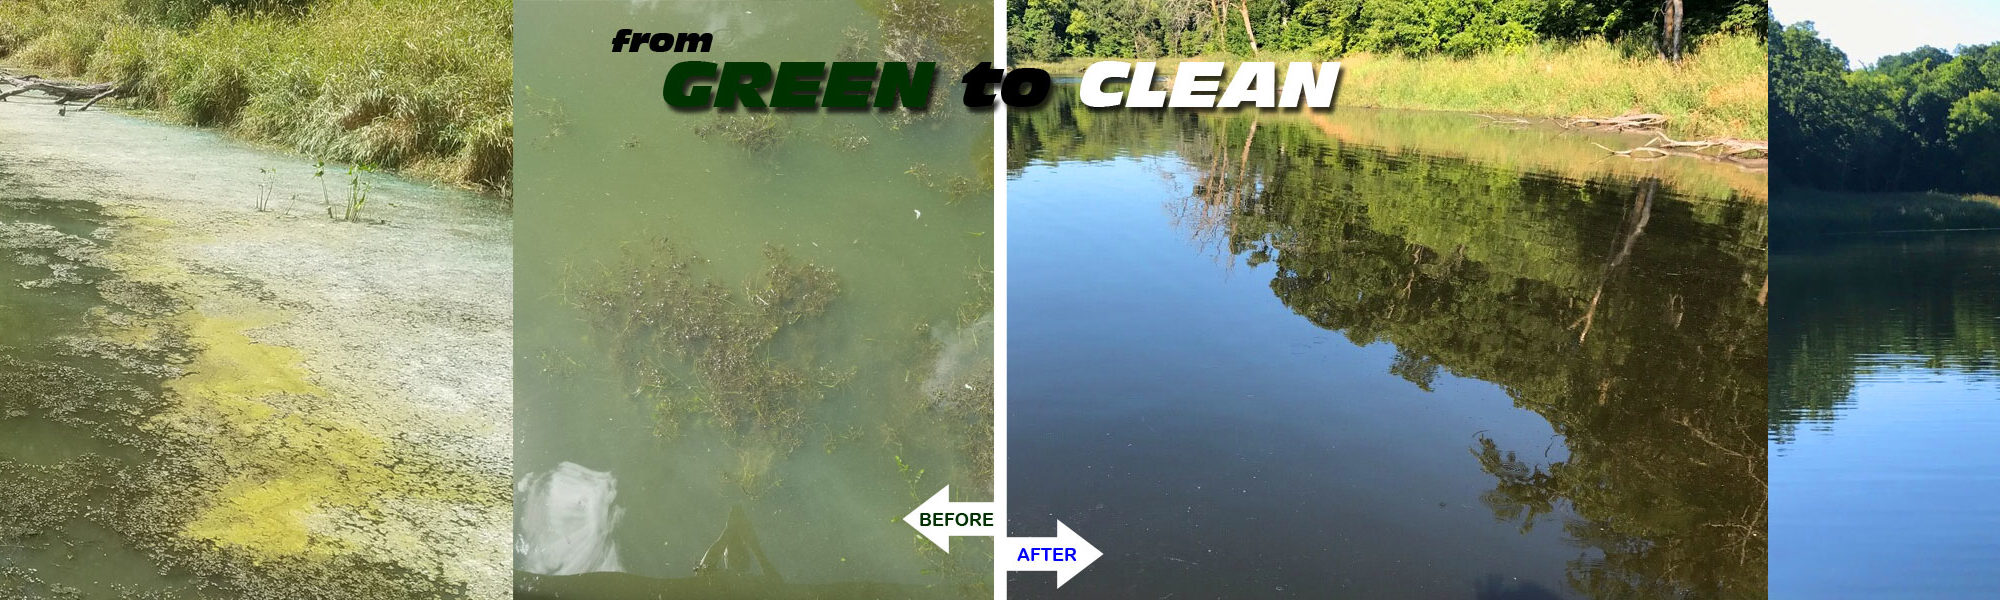 green to clean pond transformations